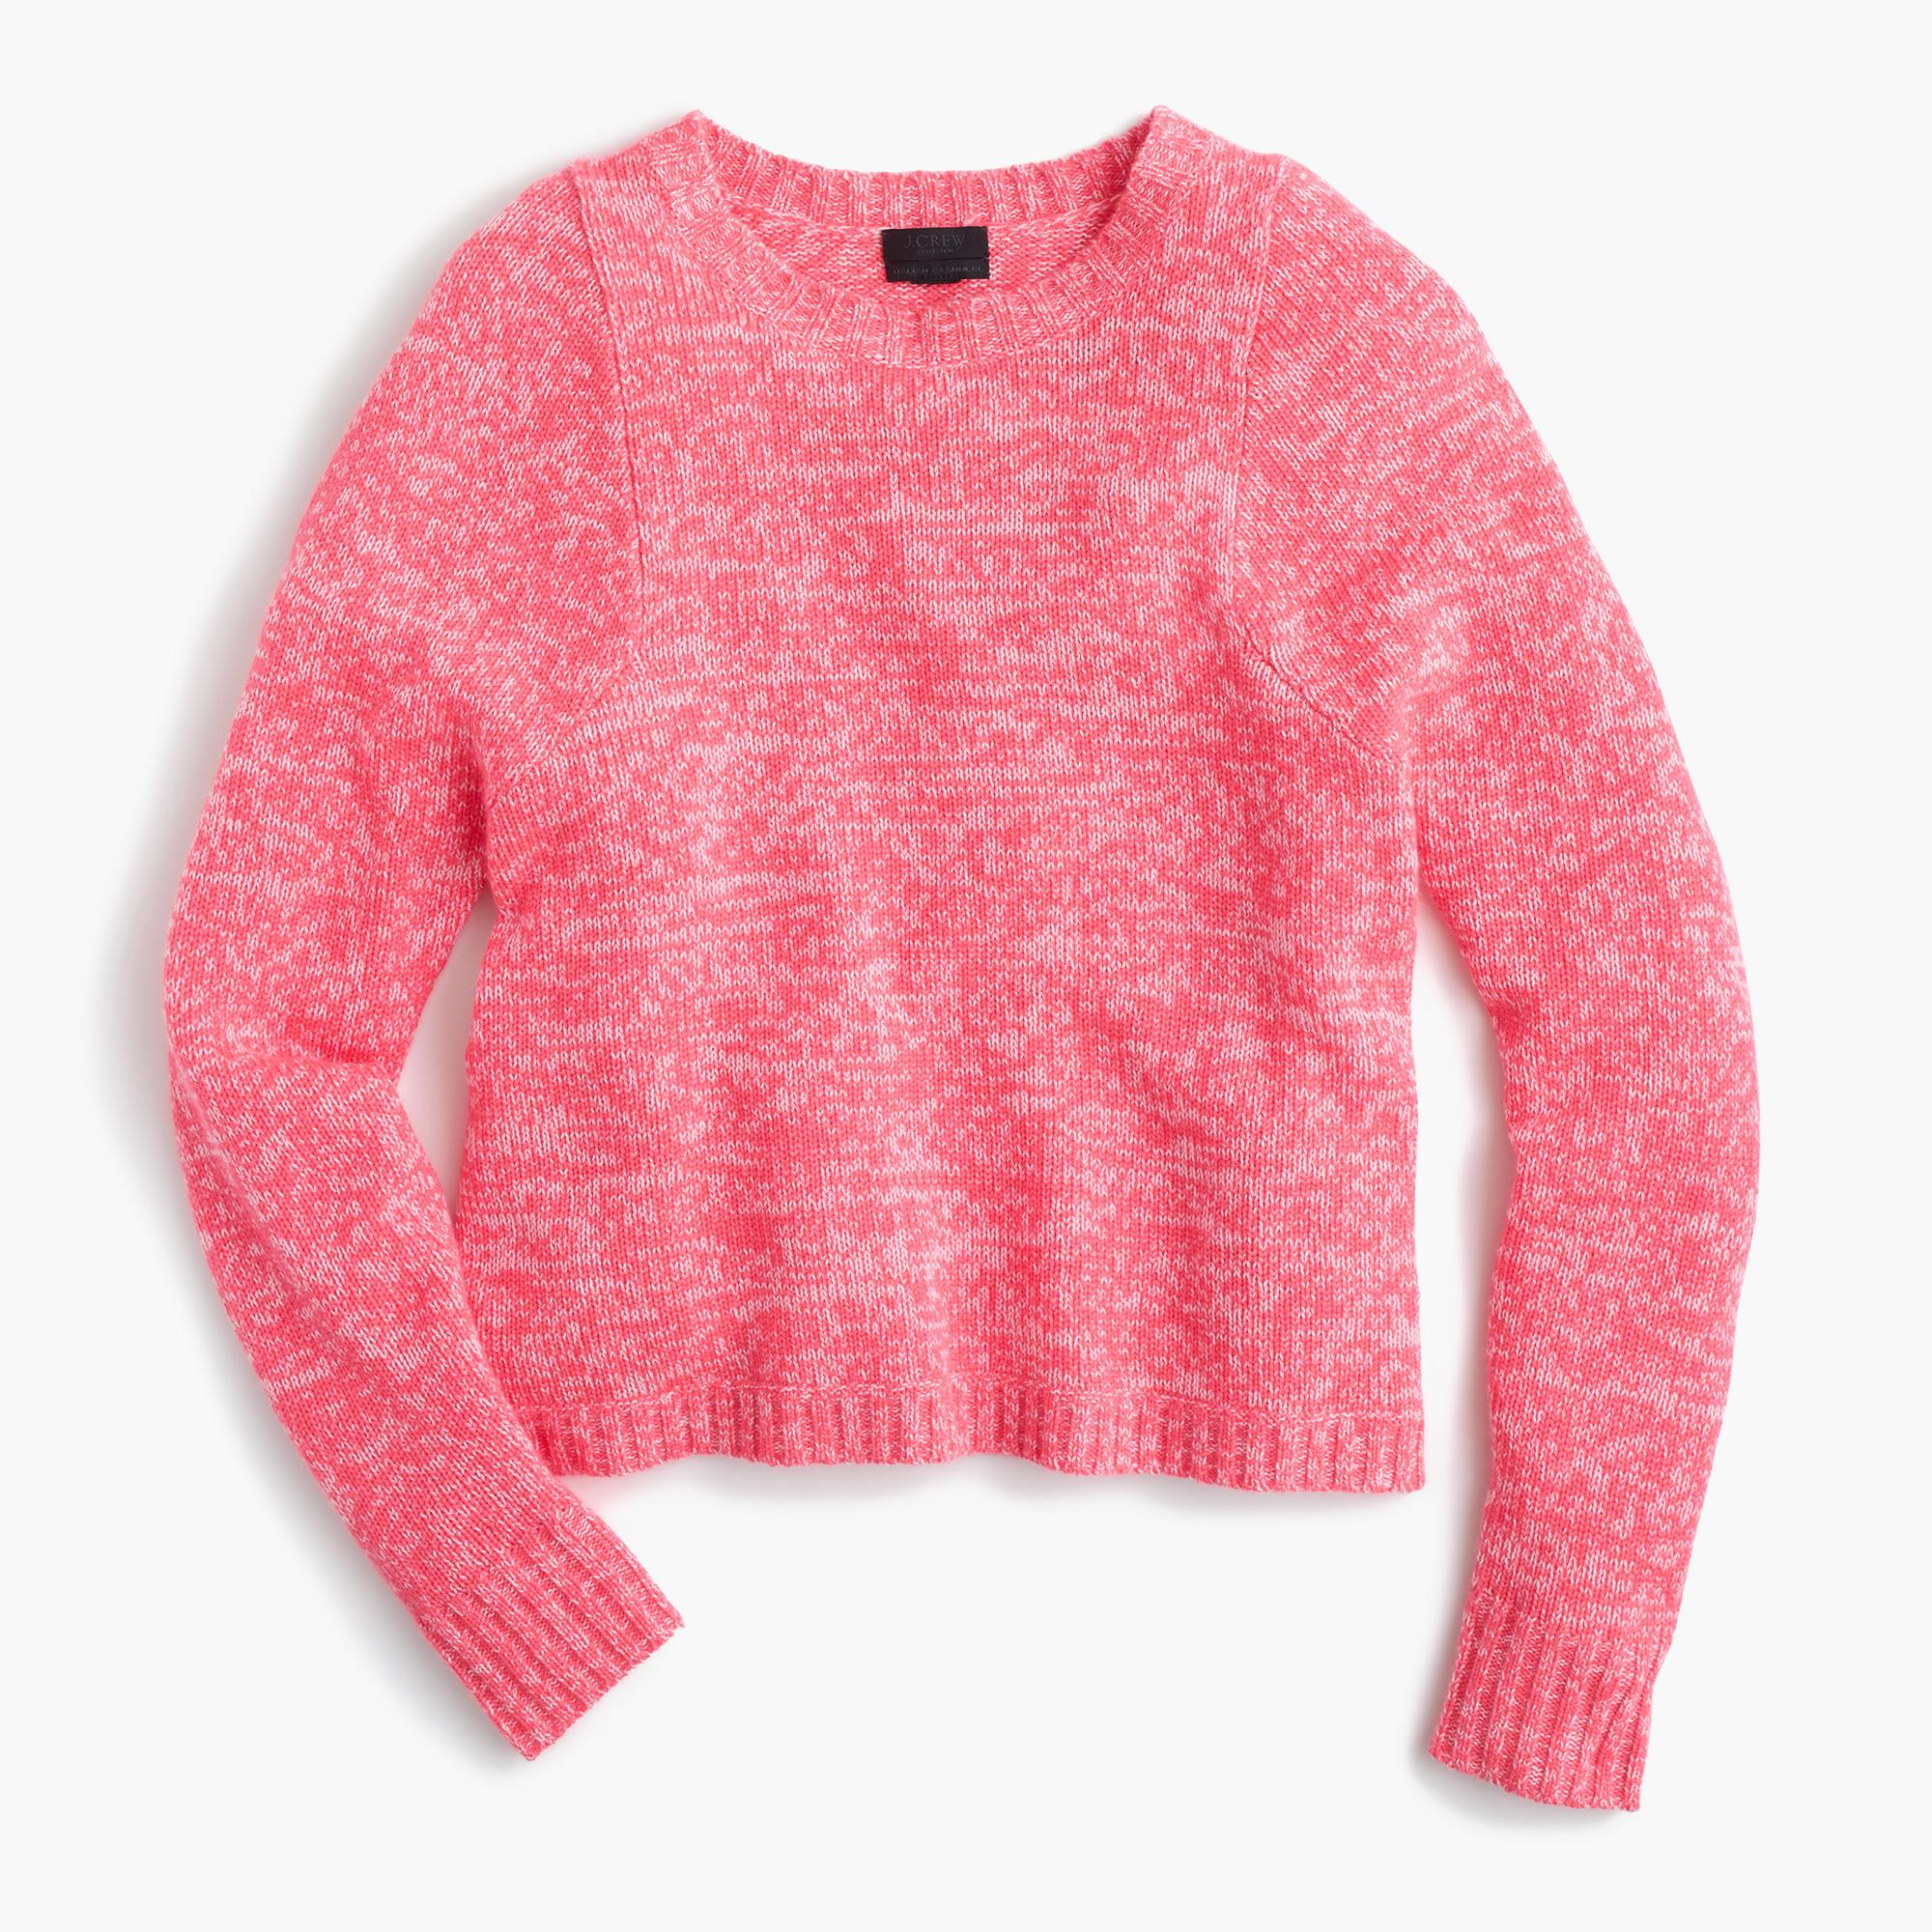 J.crew Italian Cashmere Marled Crewneck Sweater in Pink | Lyst